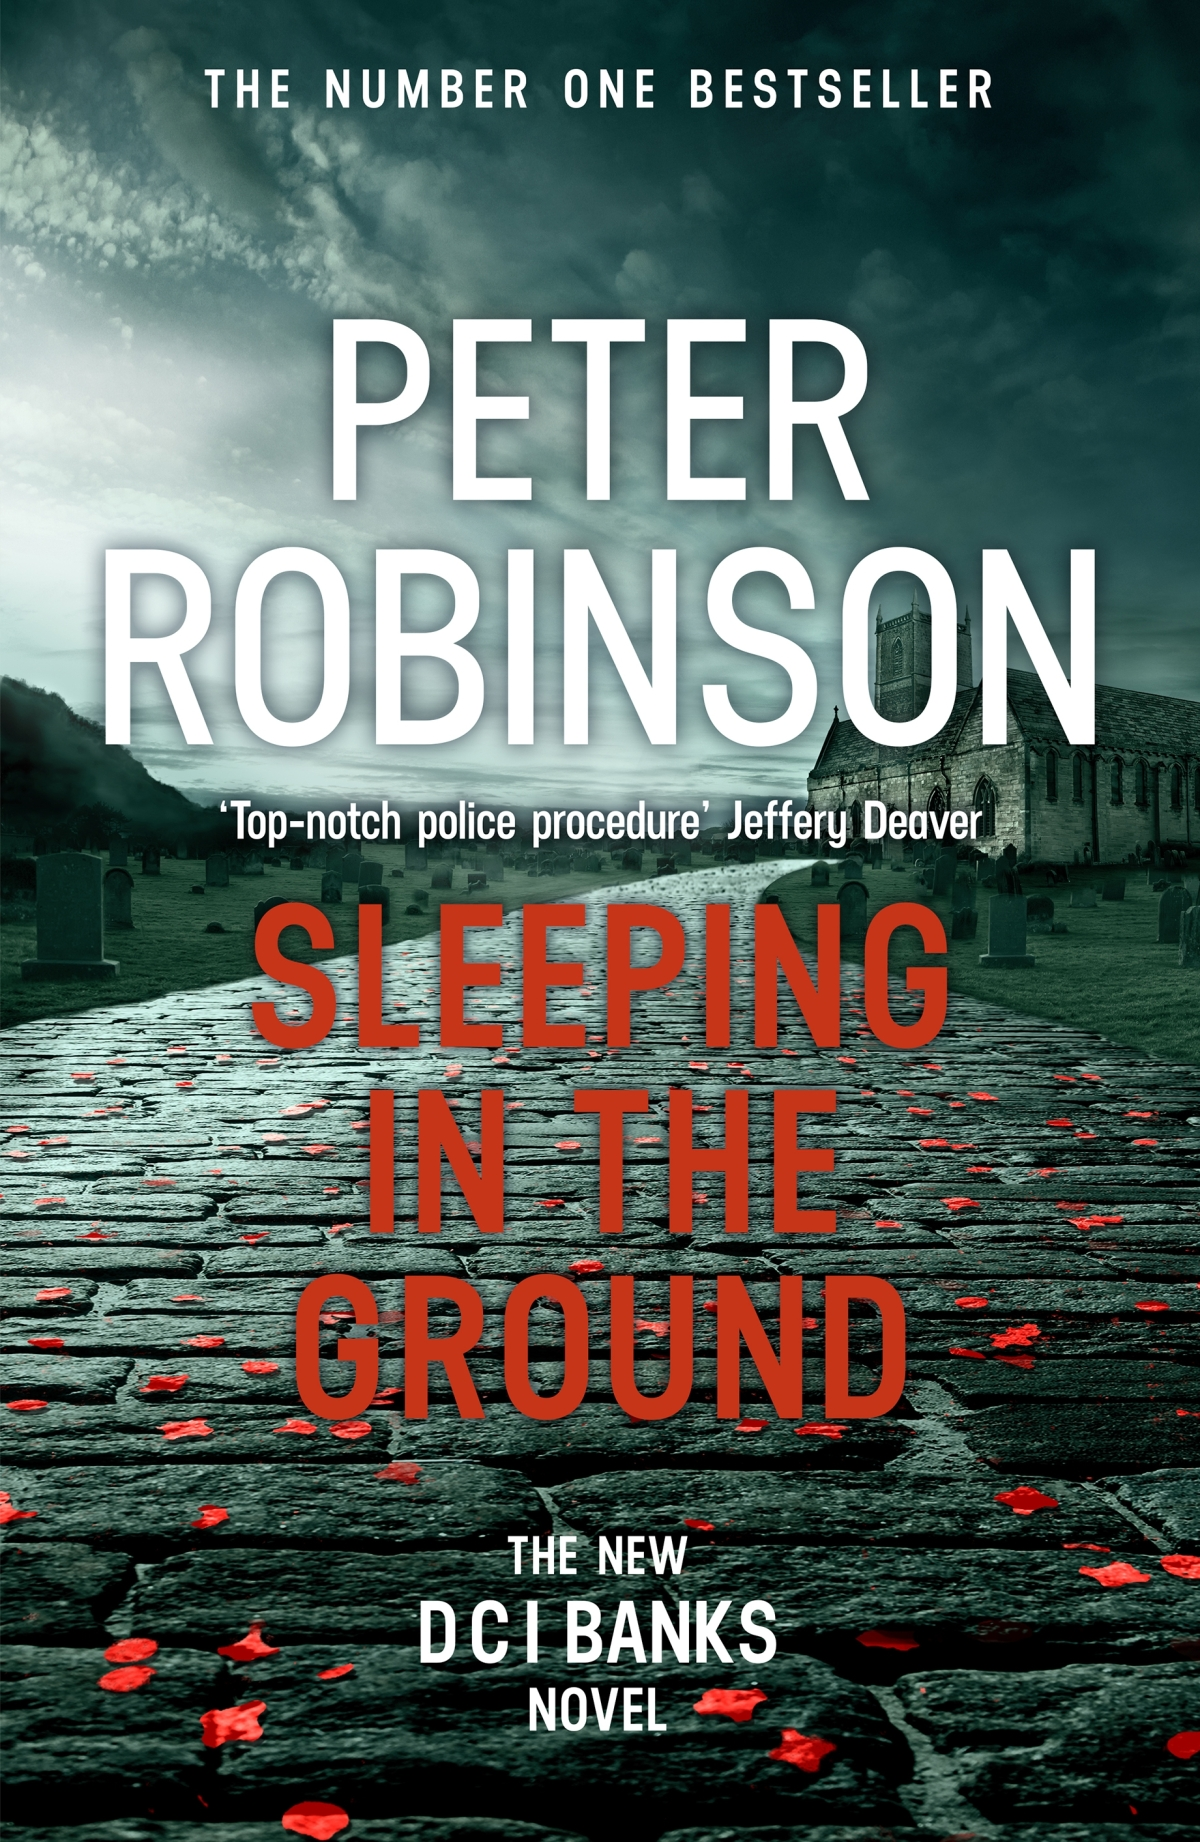 Author Q&A with Peter Robinson